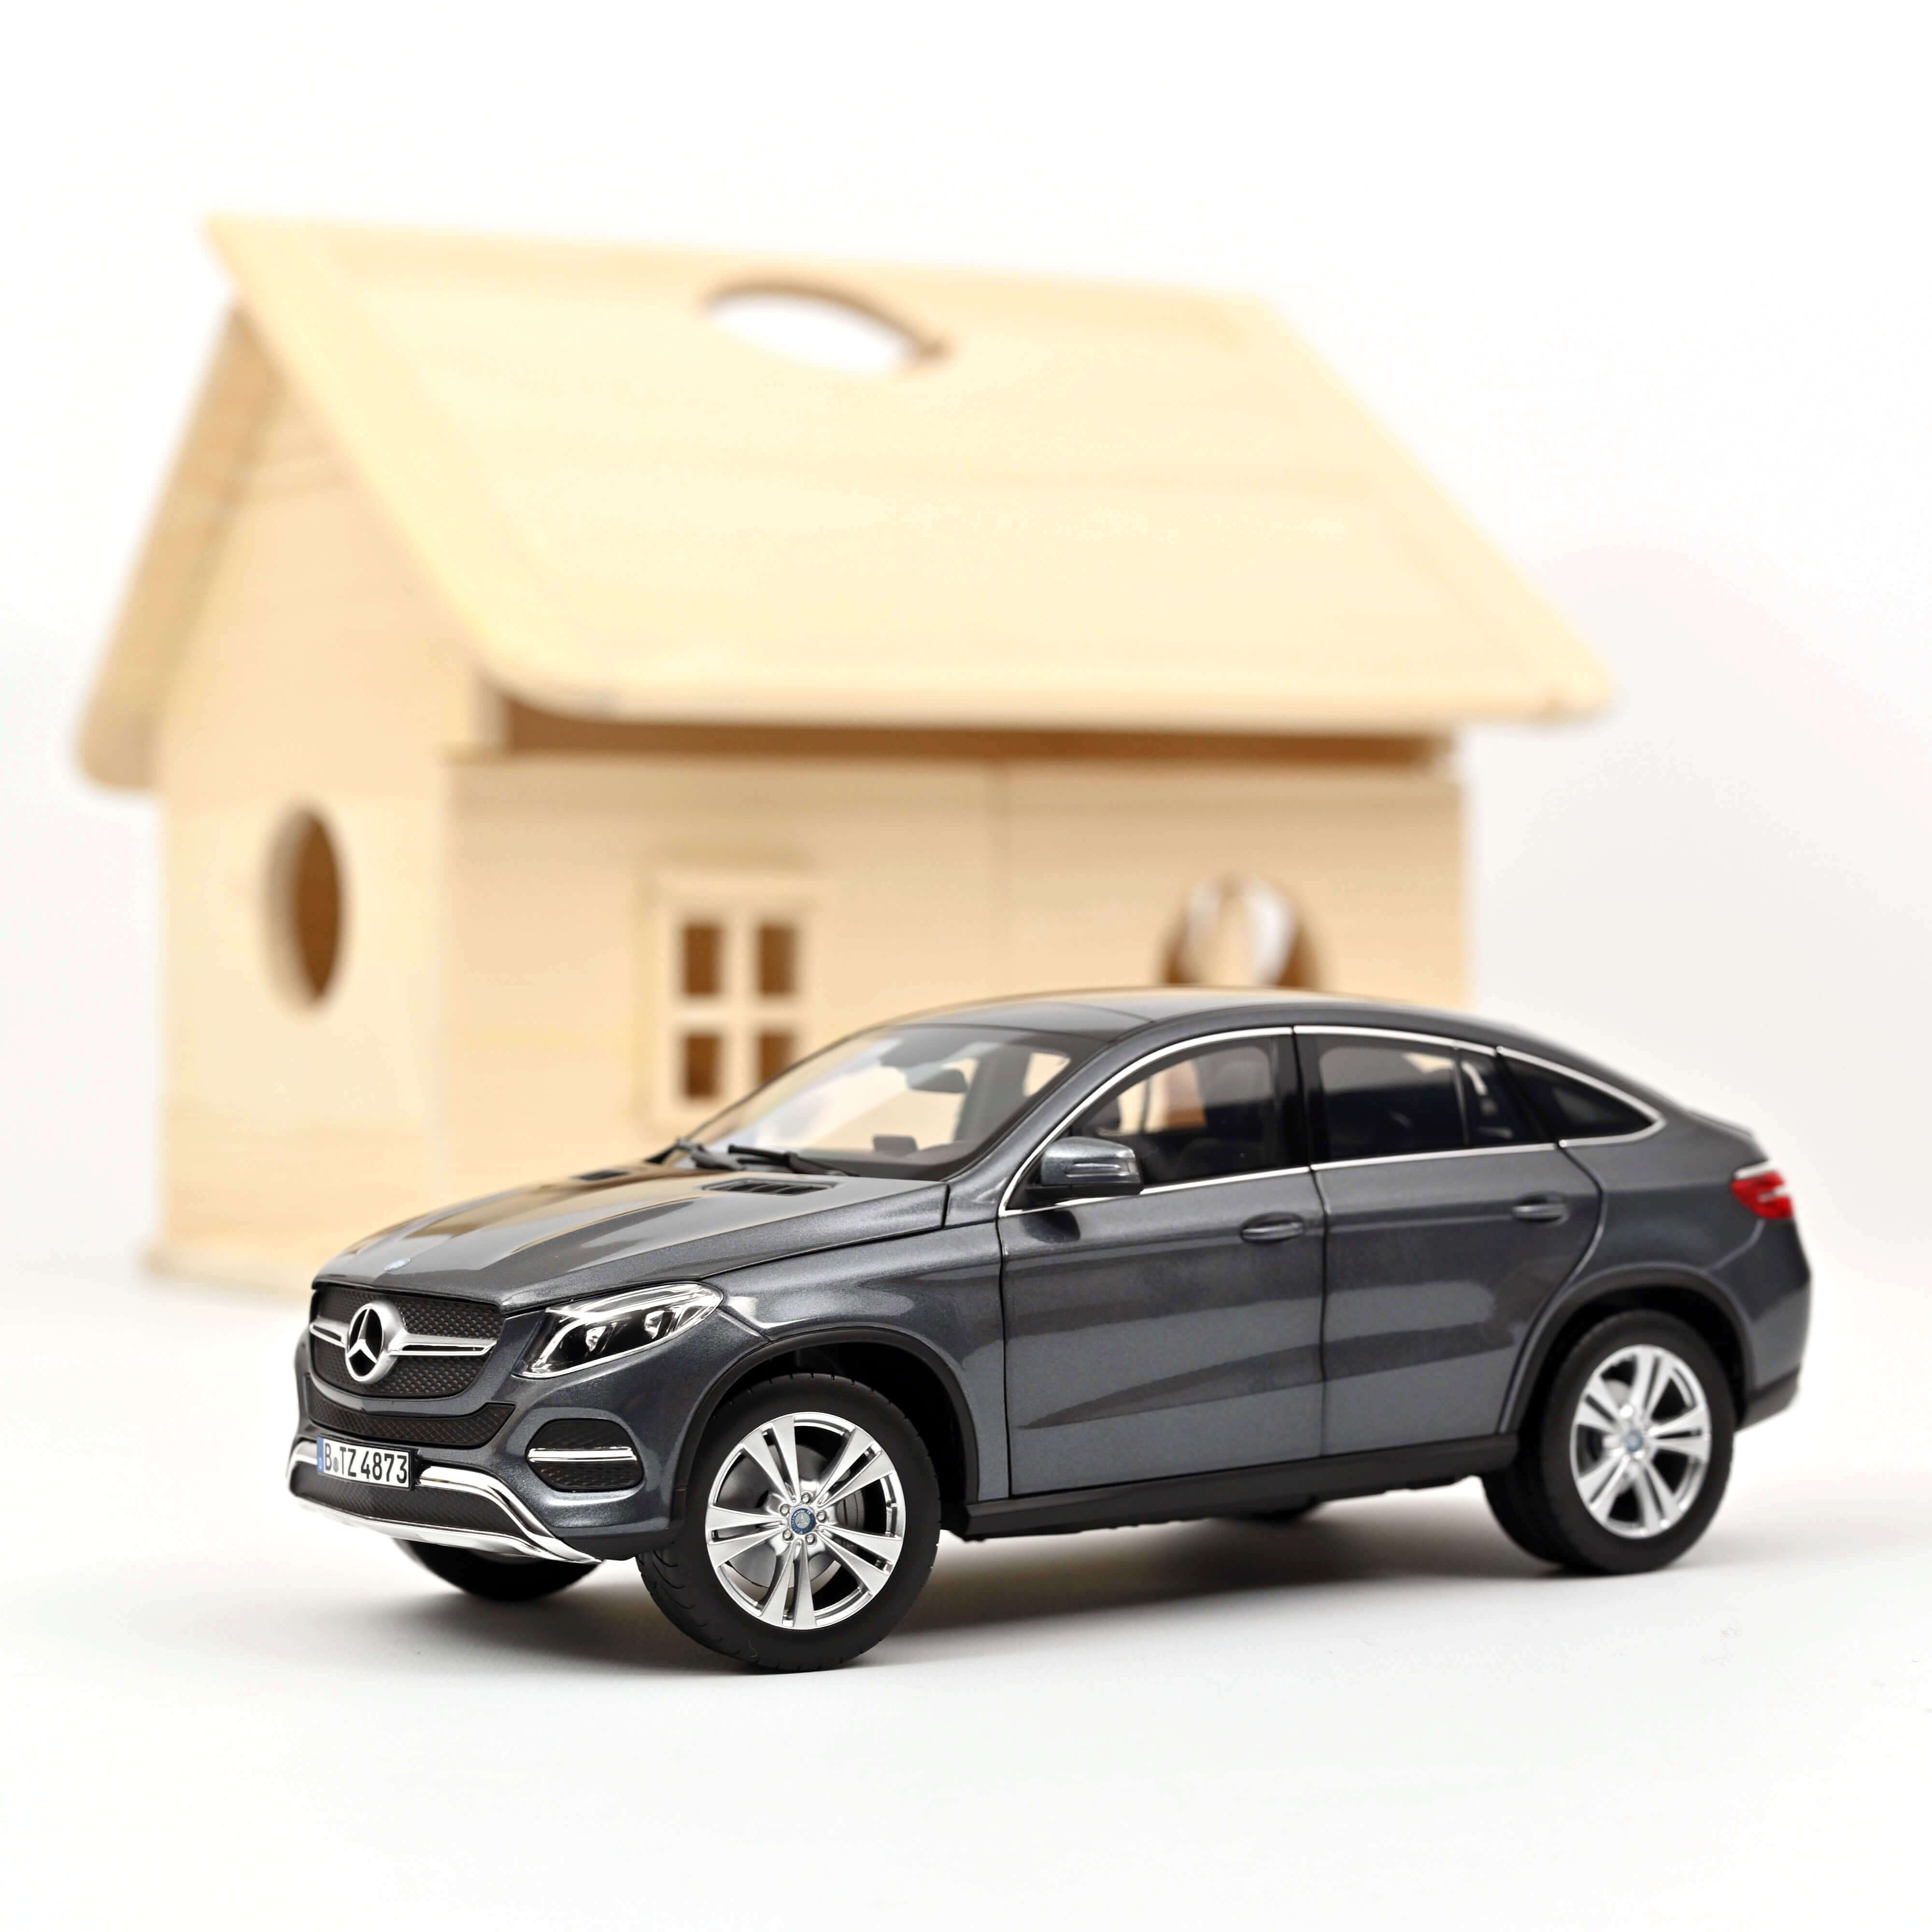 Norev 183790 Mercedes-Benz GLE Coupe - Grau metallic - 2015 1:18